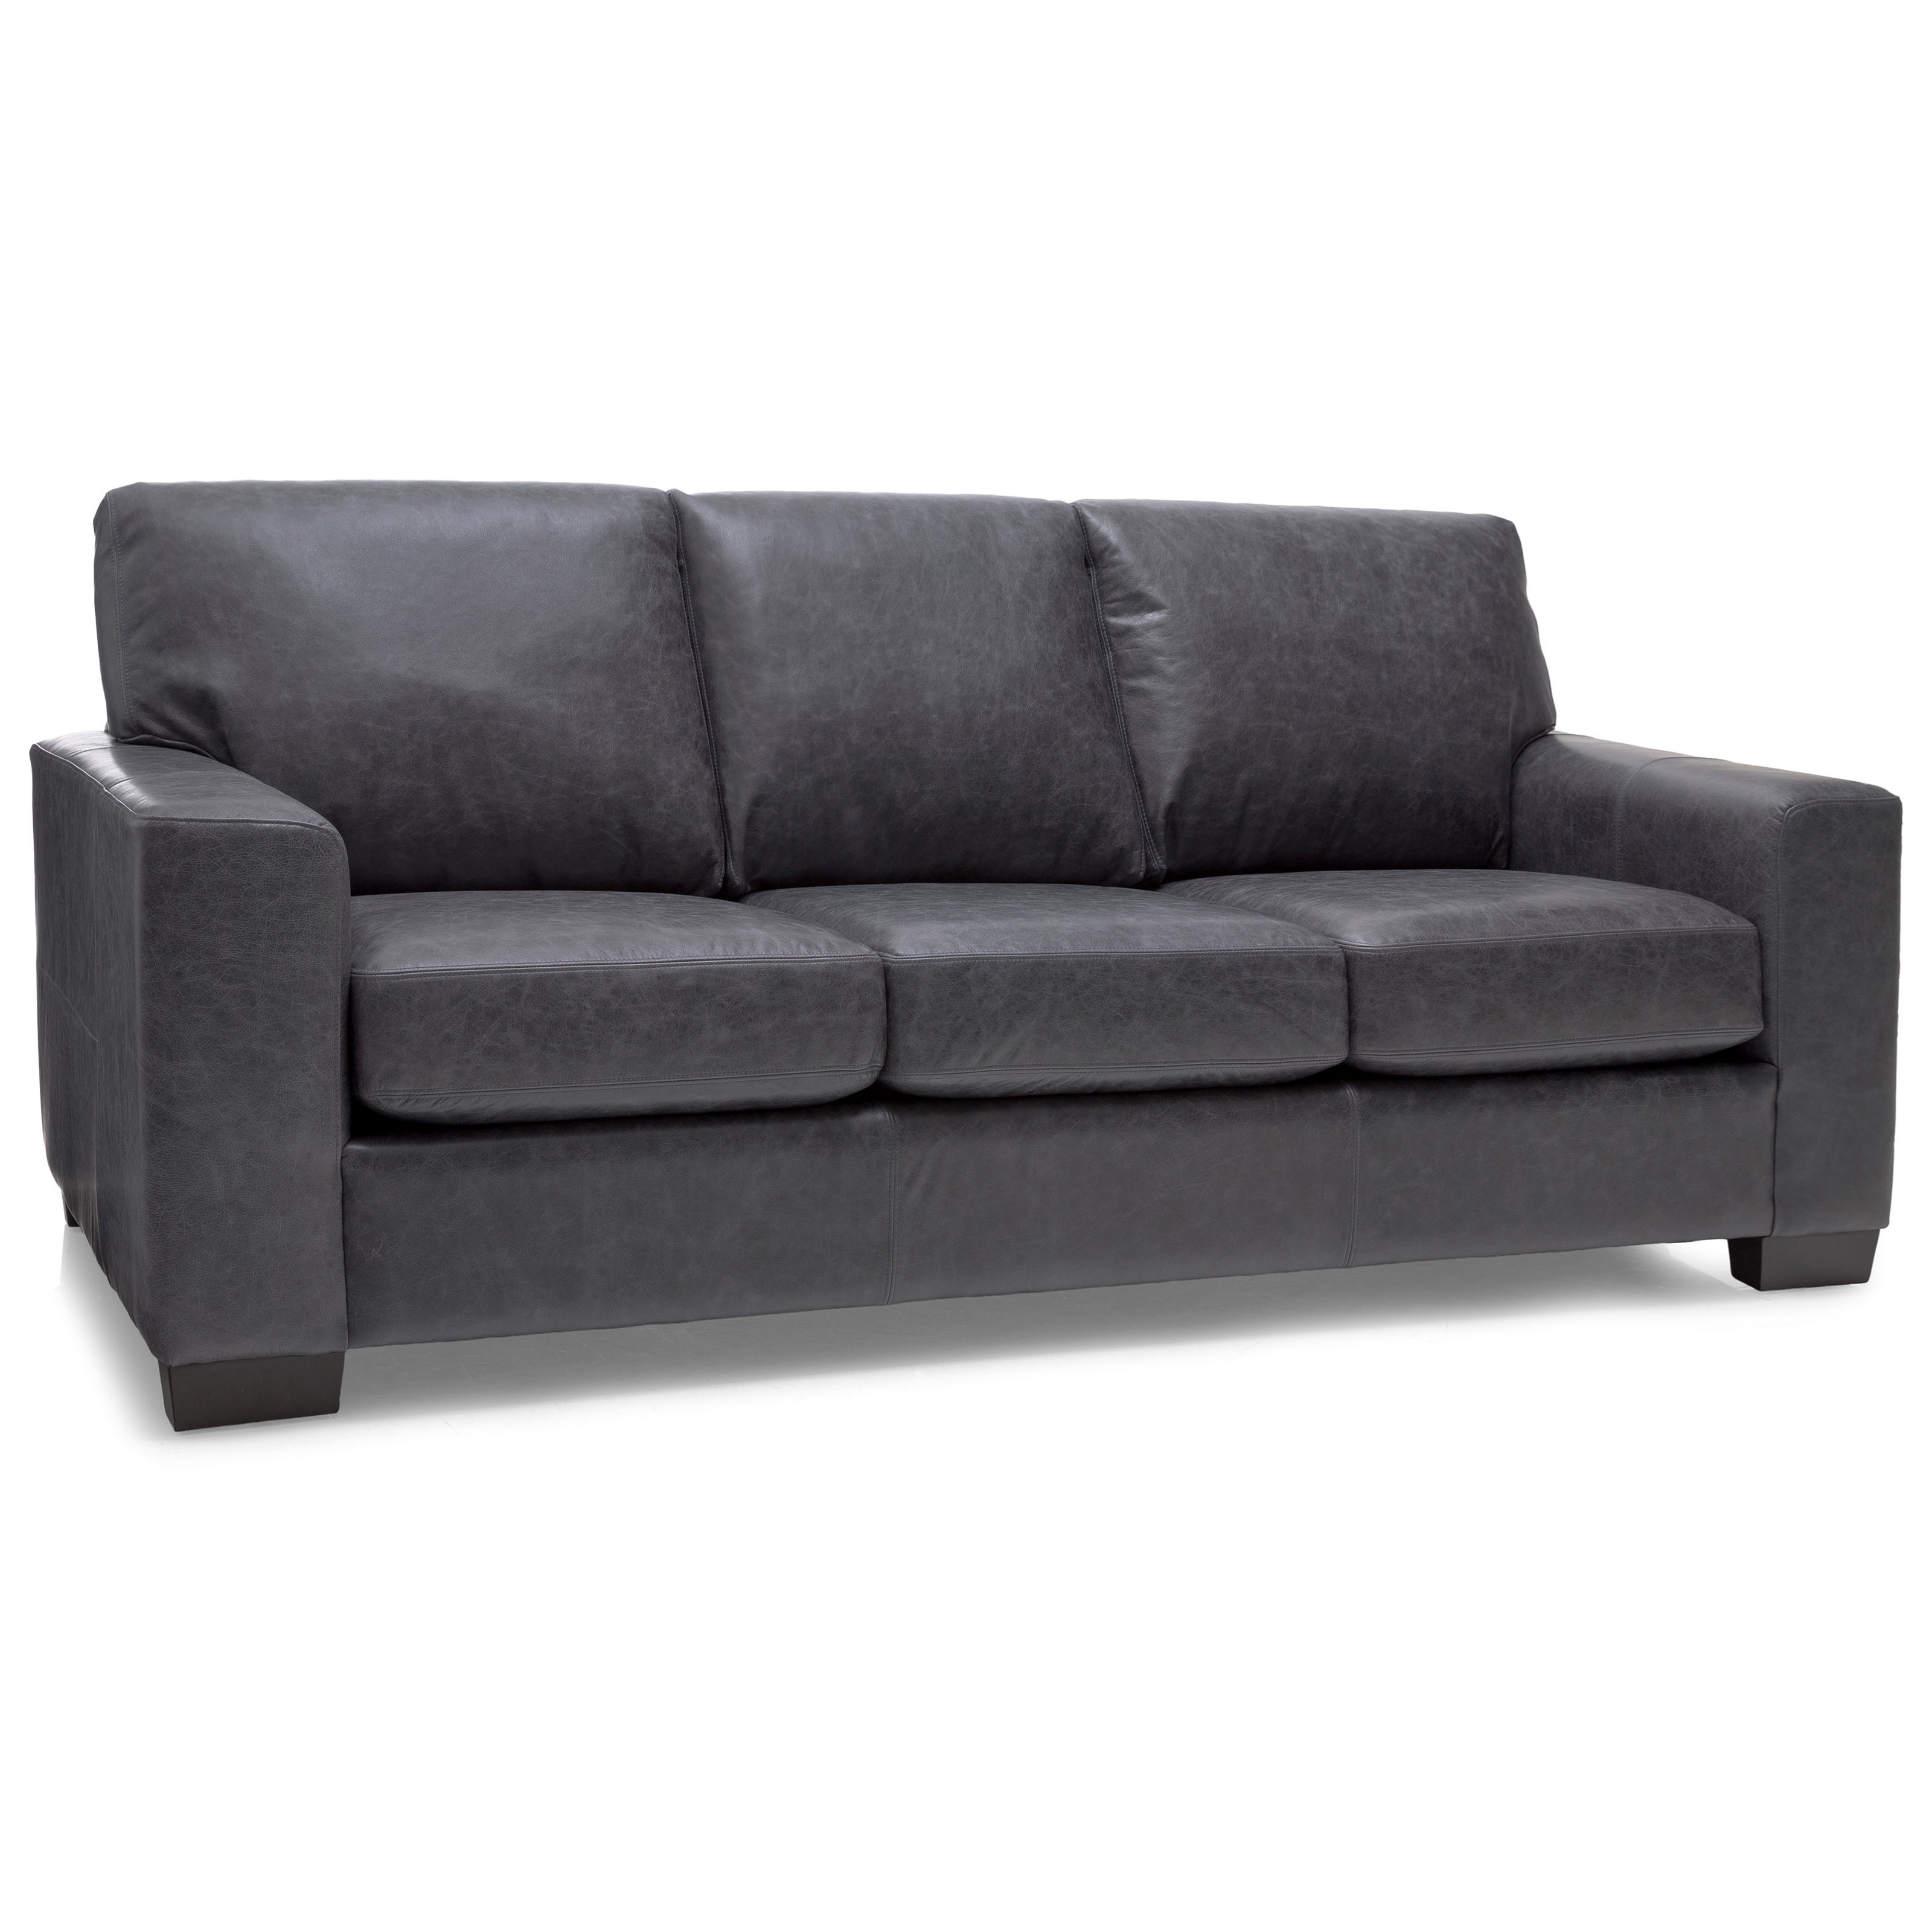 3483 Sofa by Decor-Rest at Rooms for Less